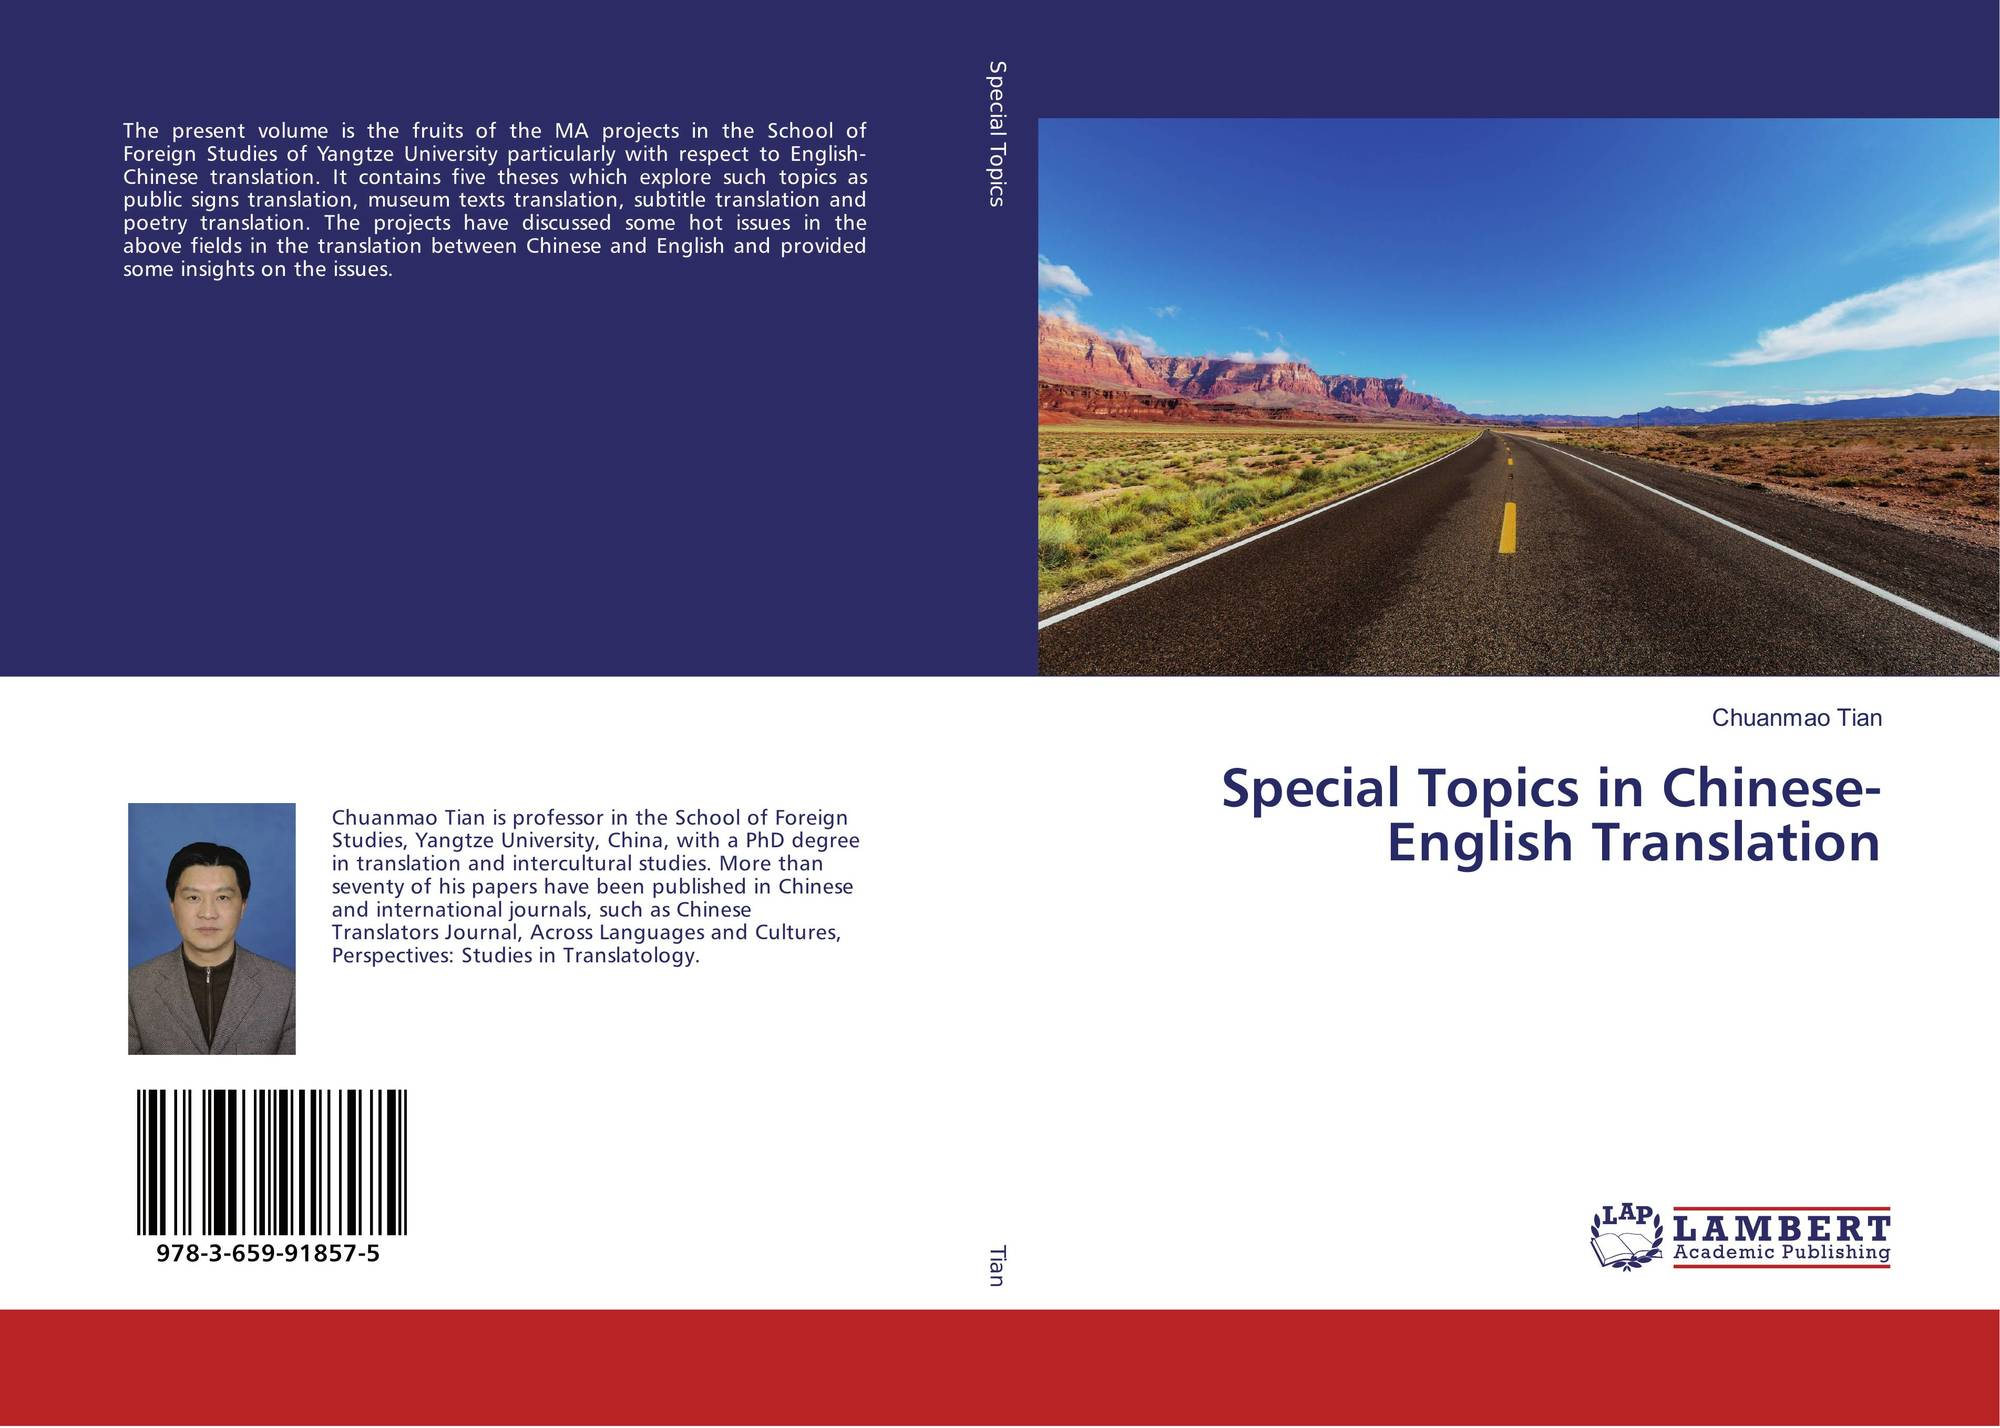 Special Topics in Chinese-English Translation, 978-3-659